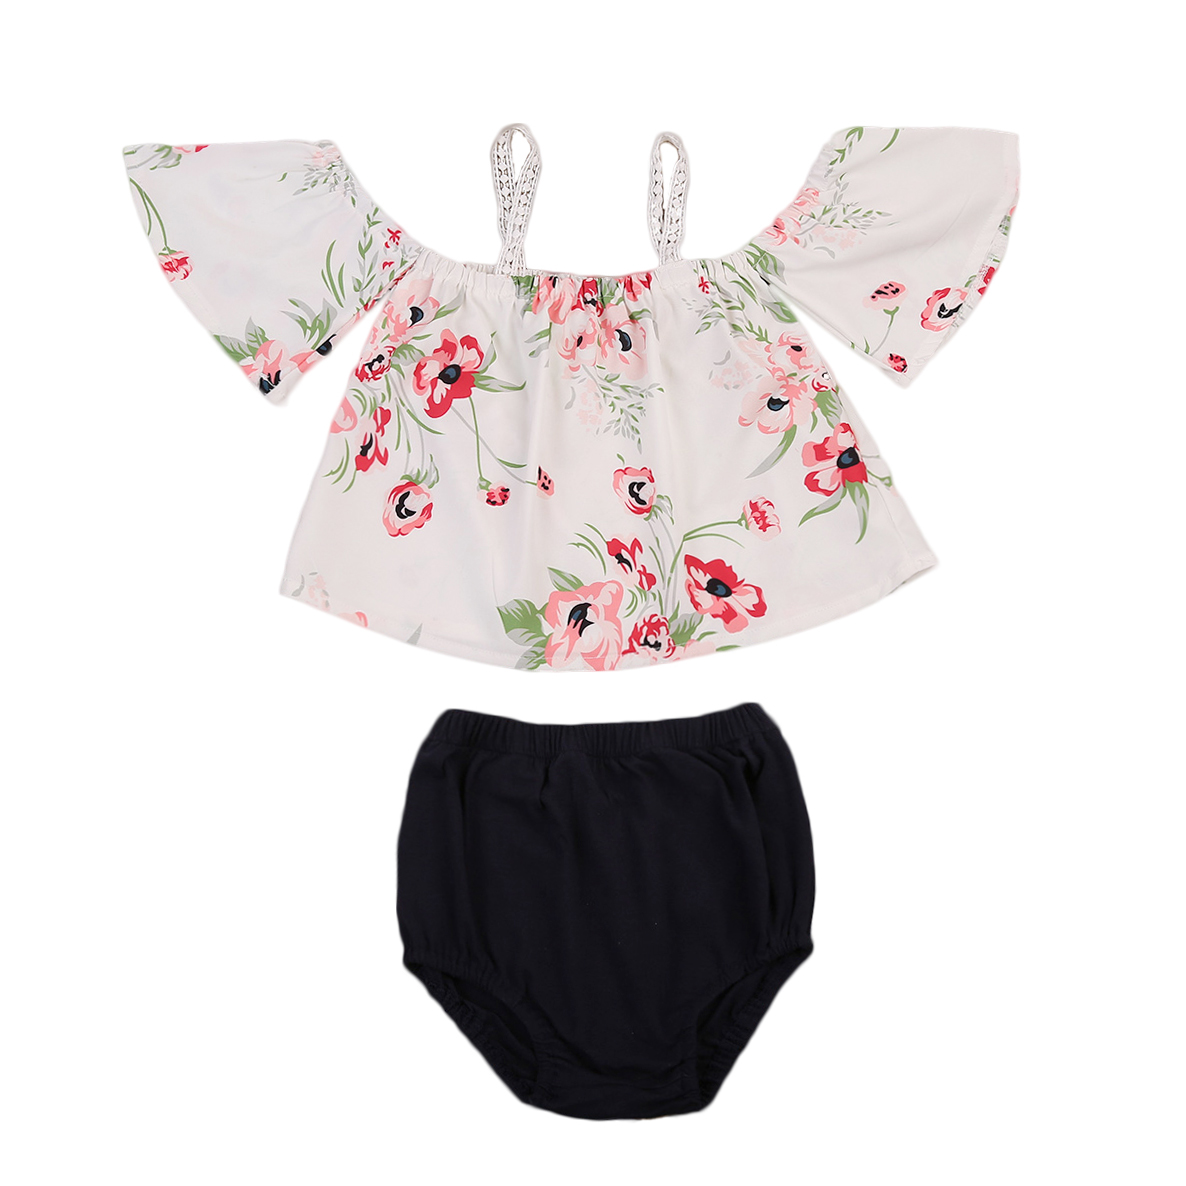 2017 Cute Newborn Infant Baby Girls Clothes Floral Off Shoulder Short Sleeve T-shirts+Briefs 2pcs Summer Outfits Sets